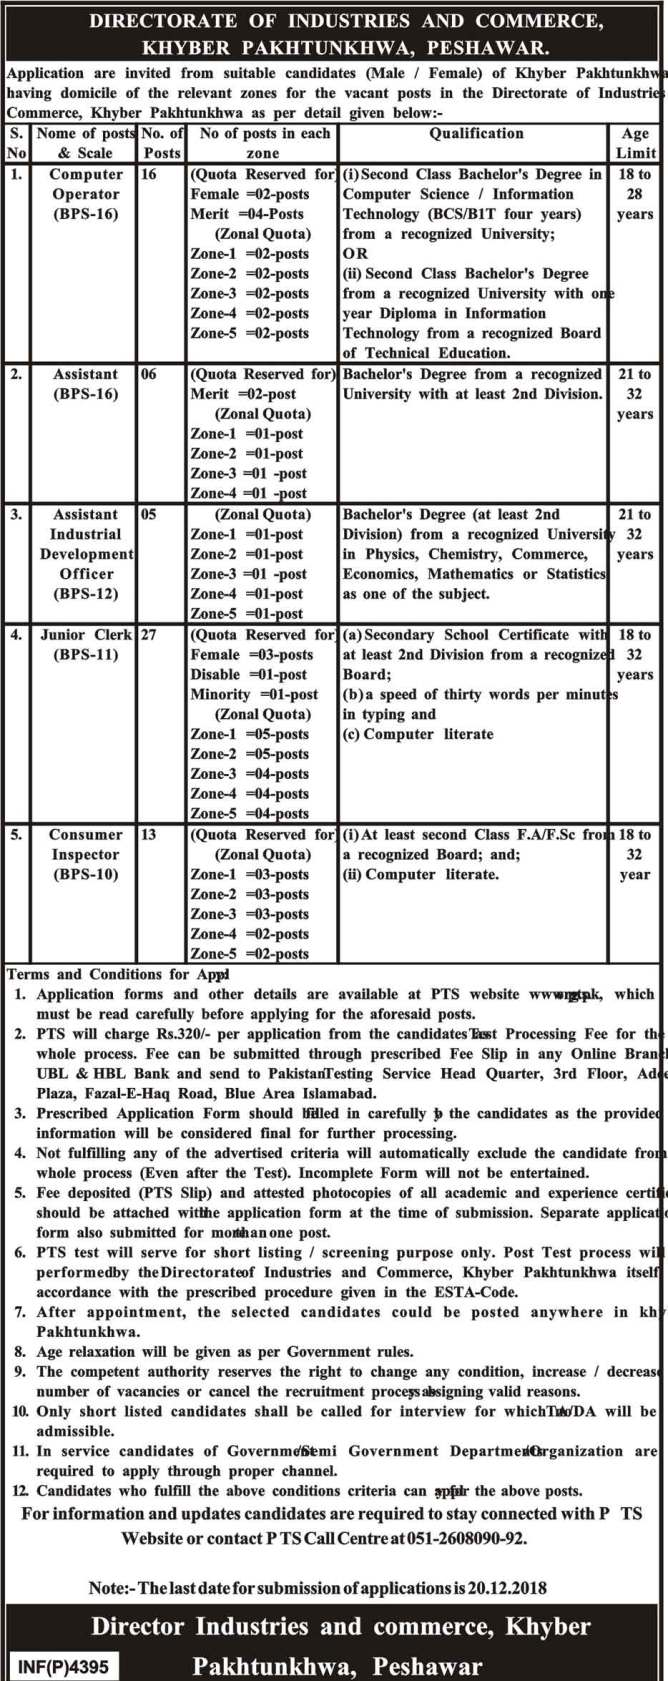 Jobs in Khyber Pakhtunkhwa Chamber of-Commerce 2019